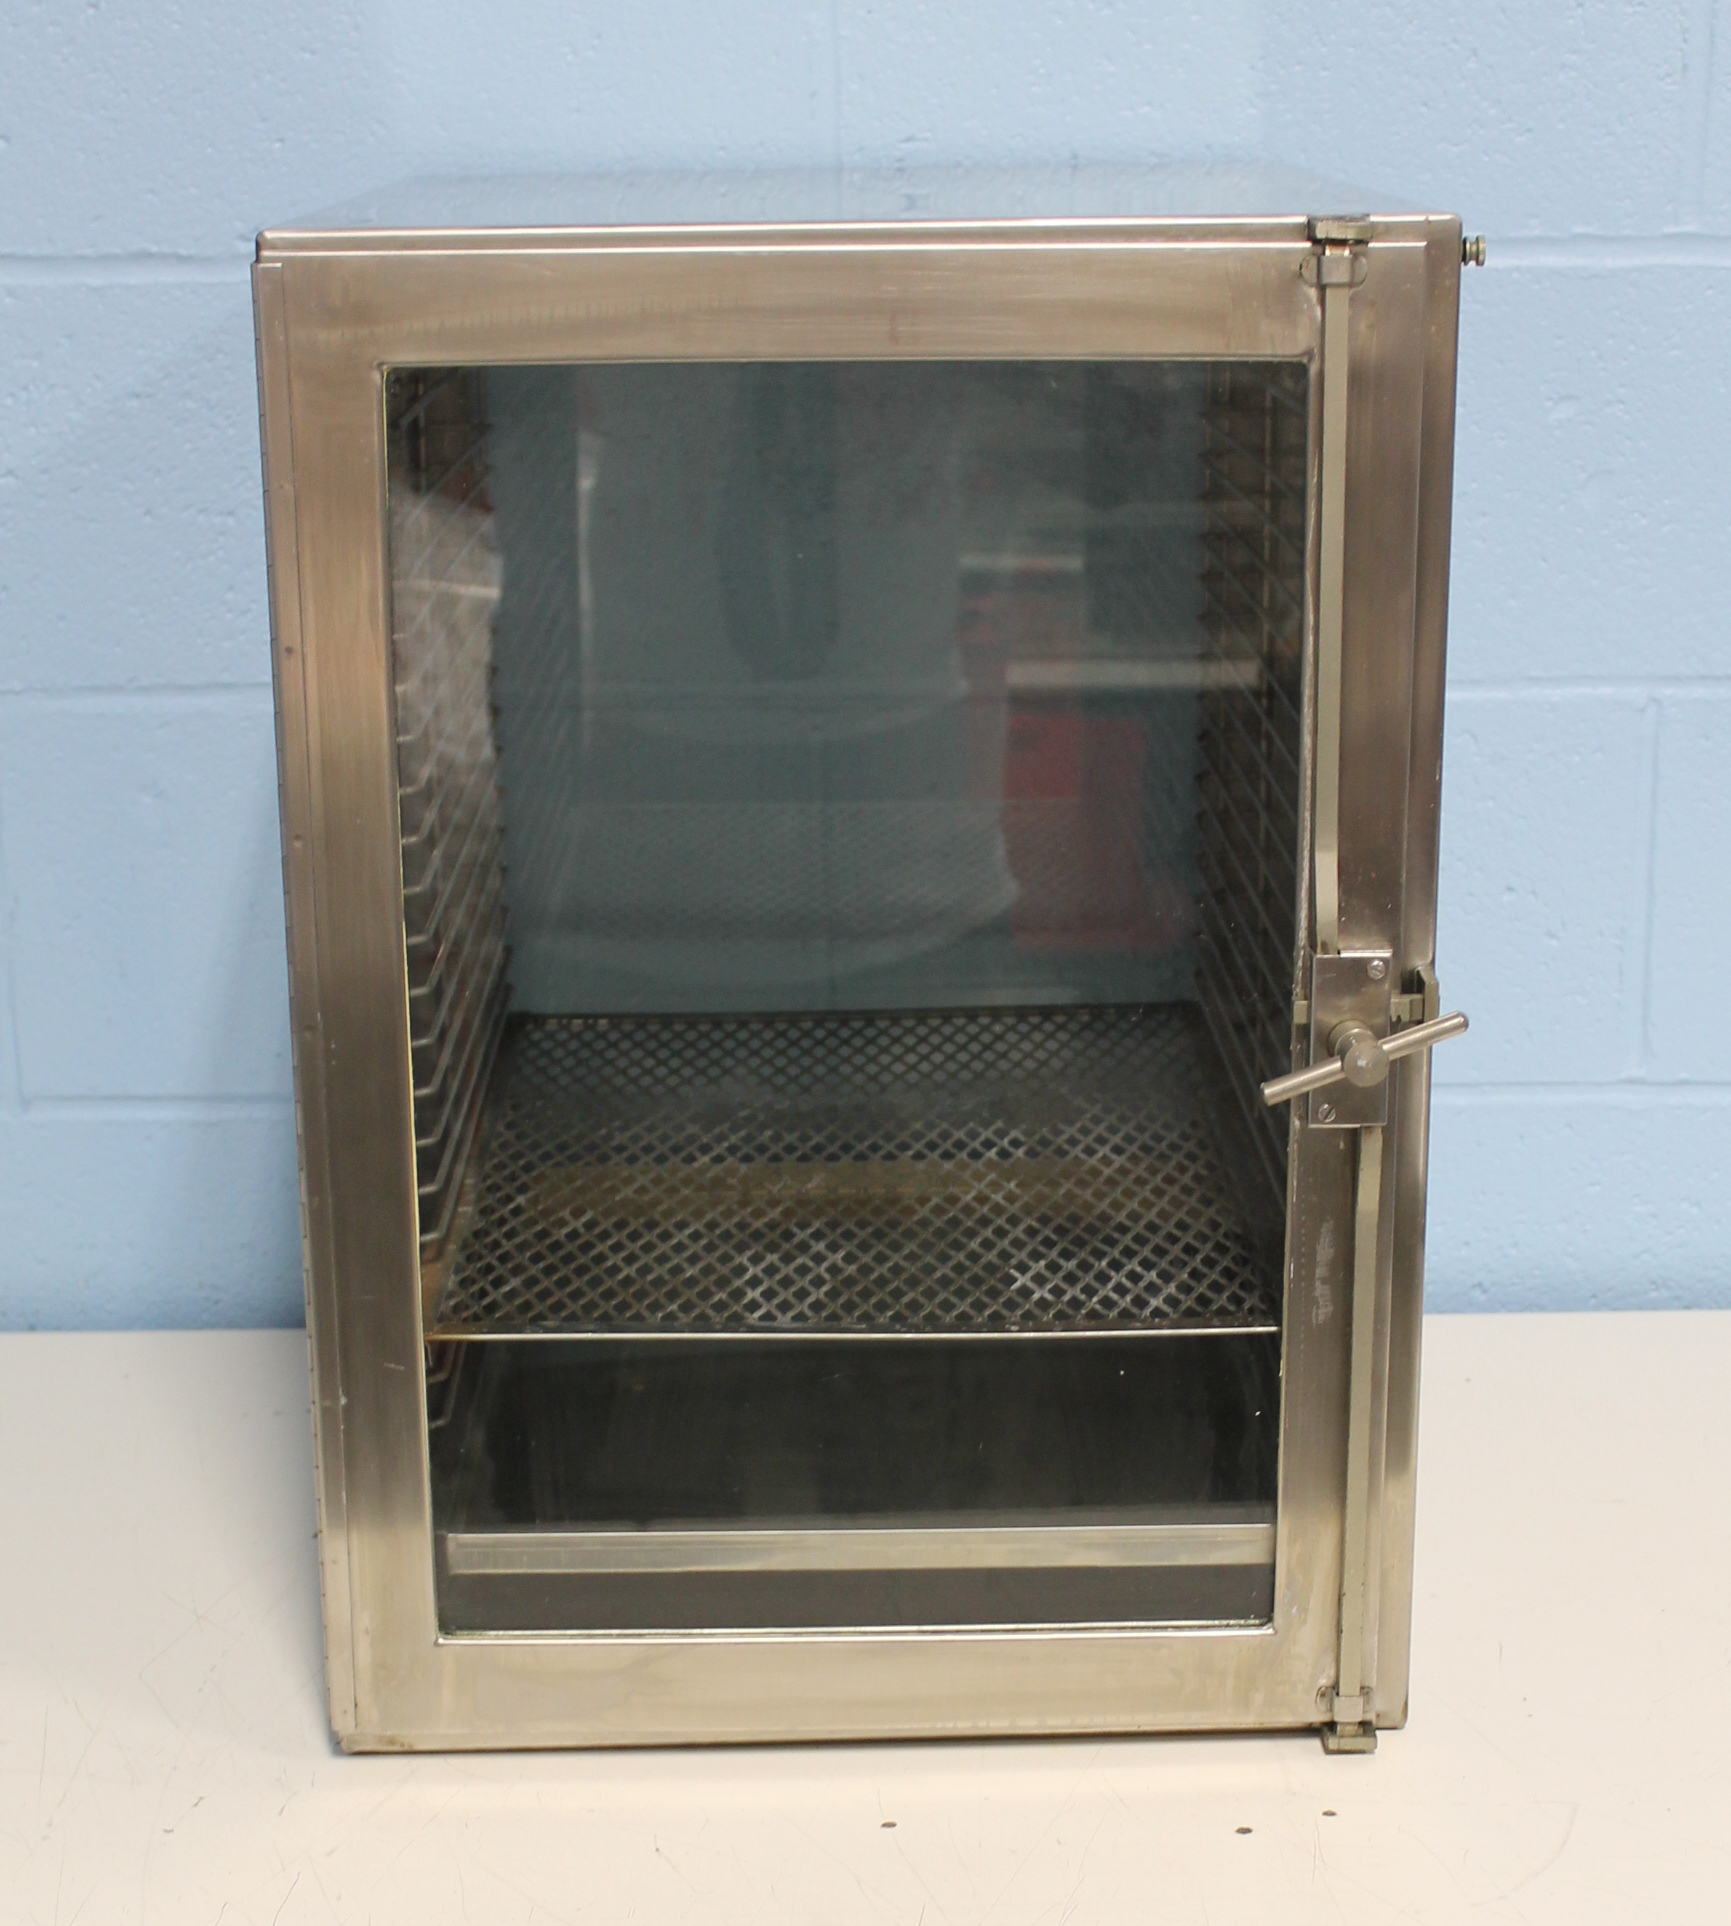 Airtight Stainless Steel Cabinet ~ Refurbished fisher scientific large stainless steel